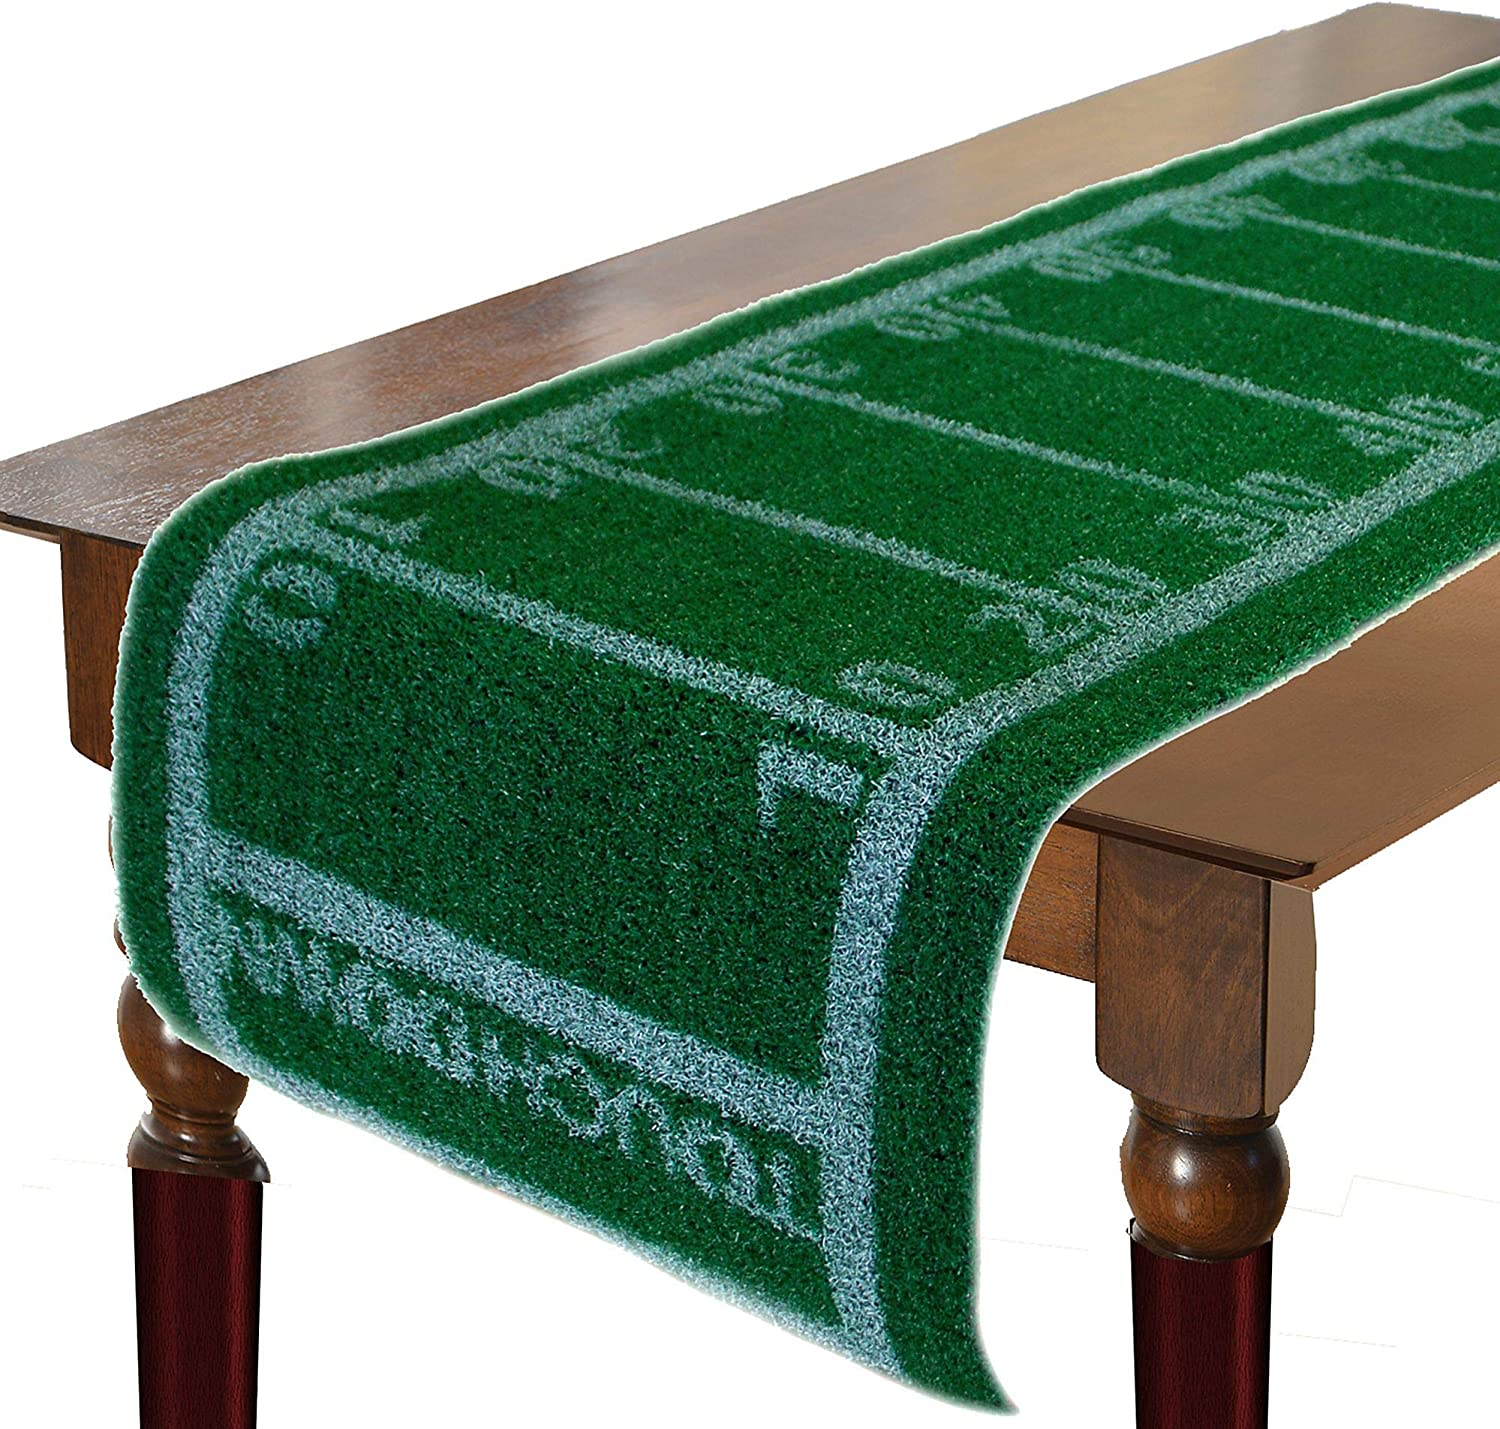 Football Brand new Turf Table Runner Tailgate Decoration OFFer for Party